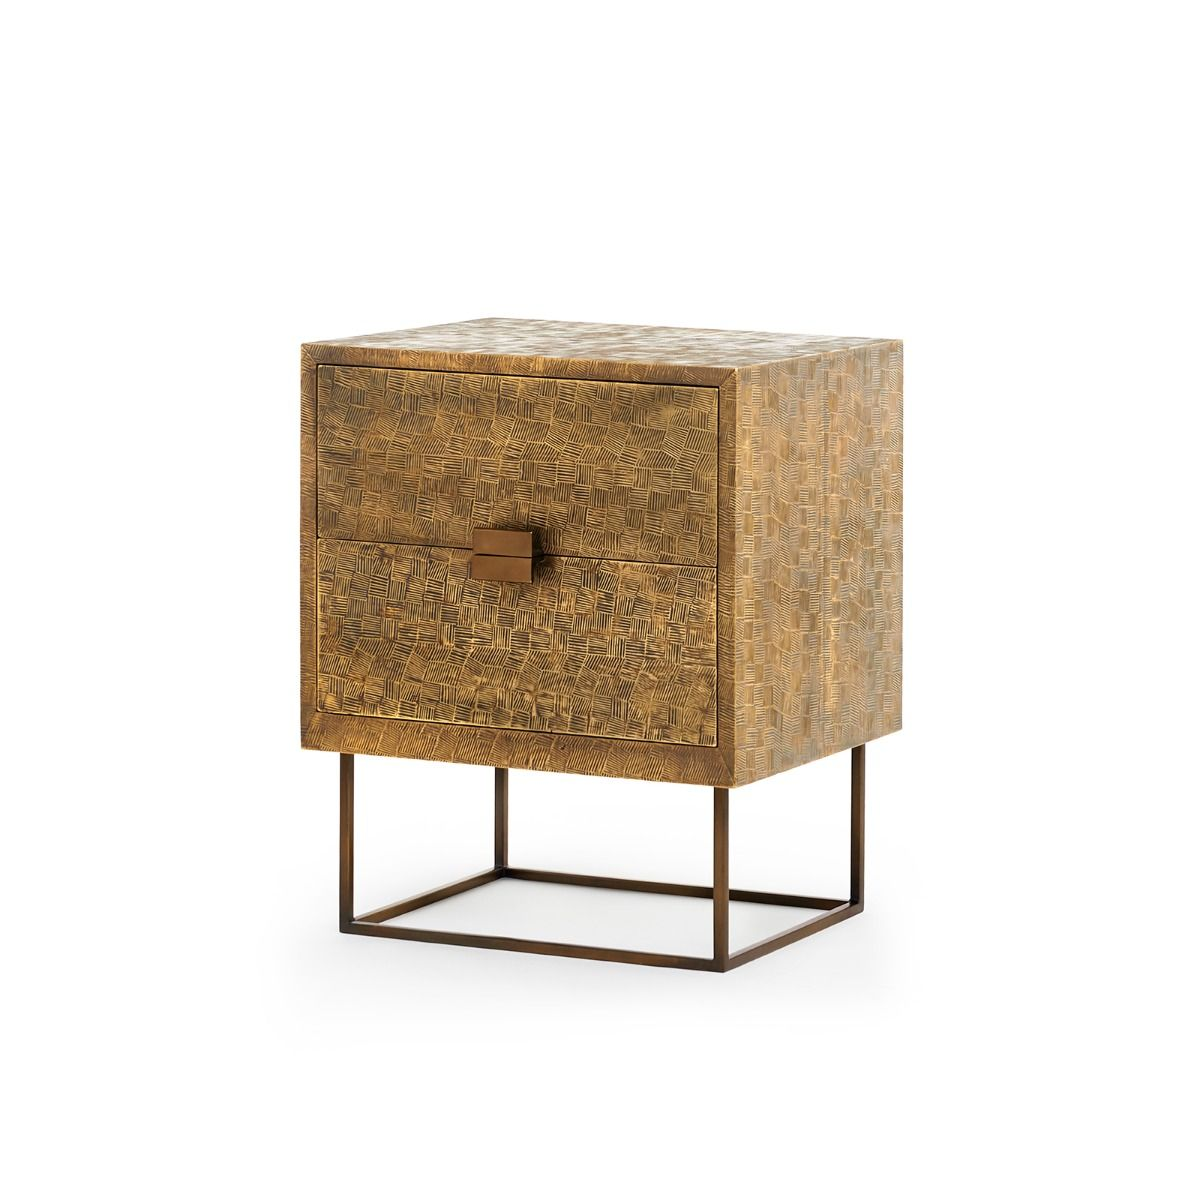 Bungalow 5 - CUBIC 2-DRAWER SIDE TABLE, ANTIQUE BRASS